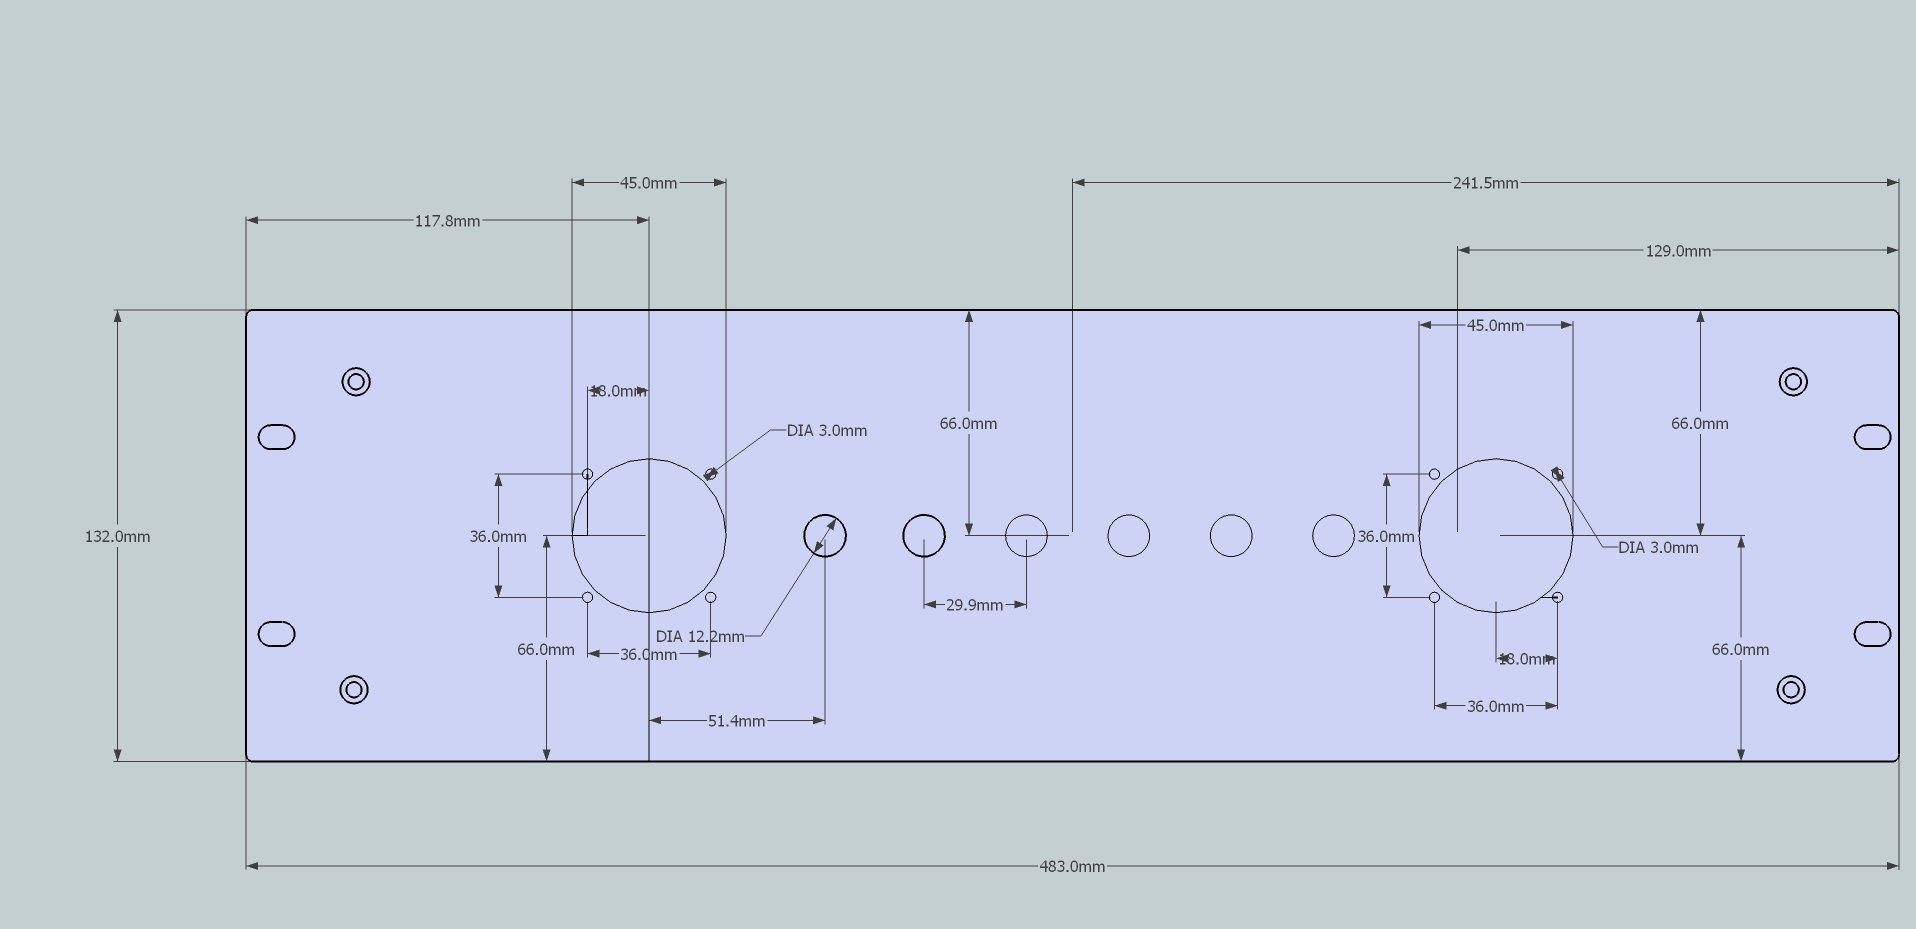 Hifi 230v Ac Mains Conditioner Project Part 1 Tinycad Free And Lightweight Circuit Schematic Design Software Image